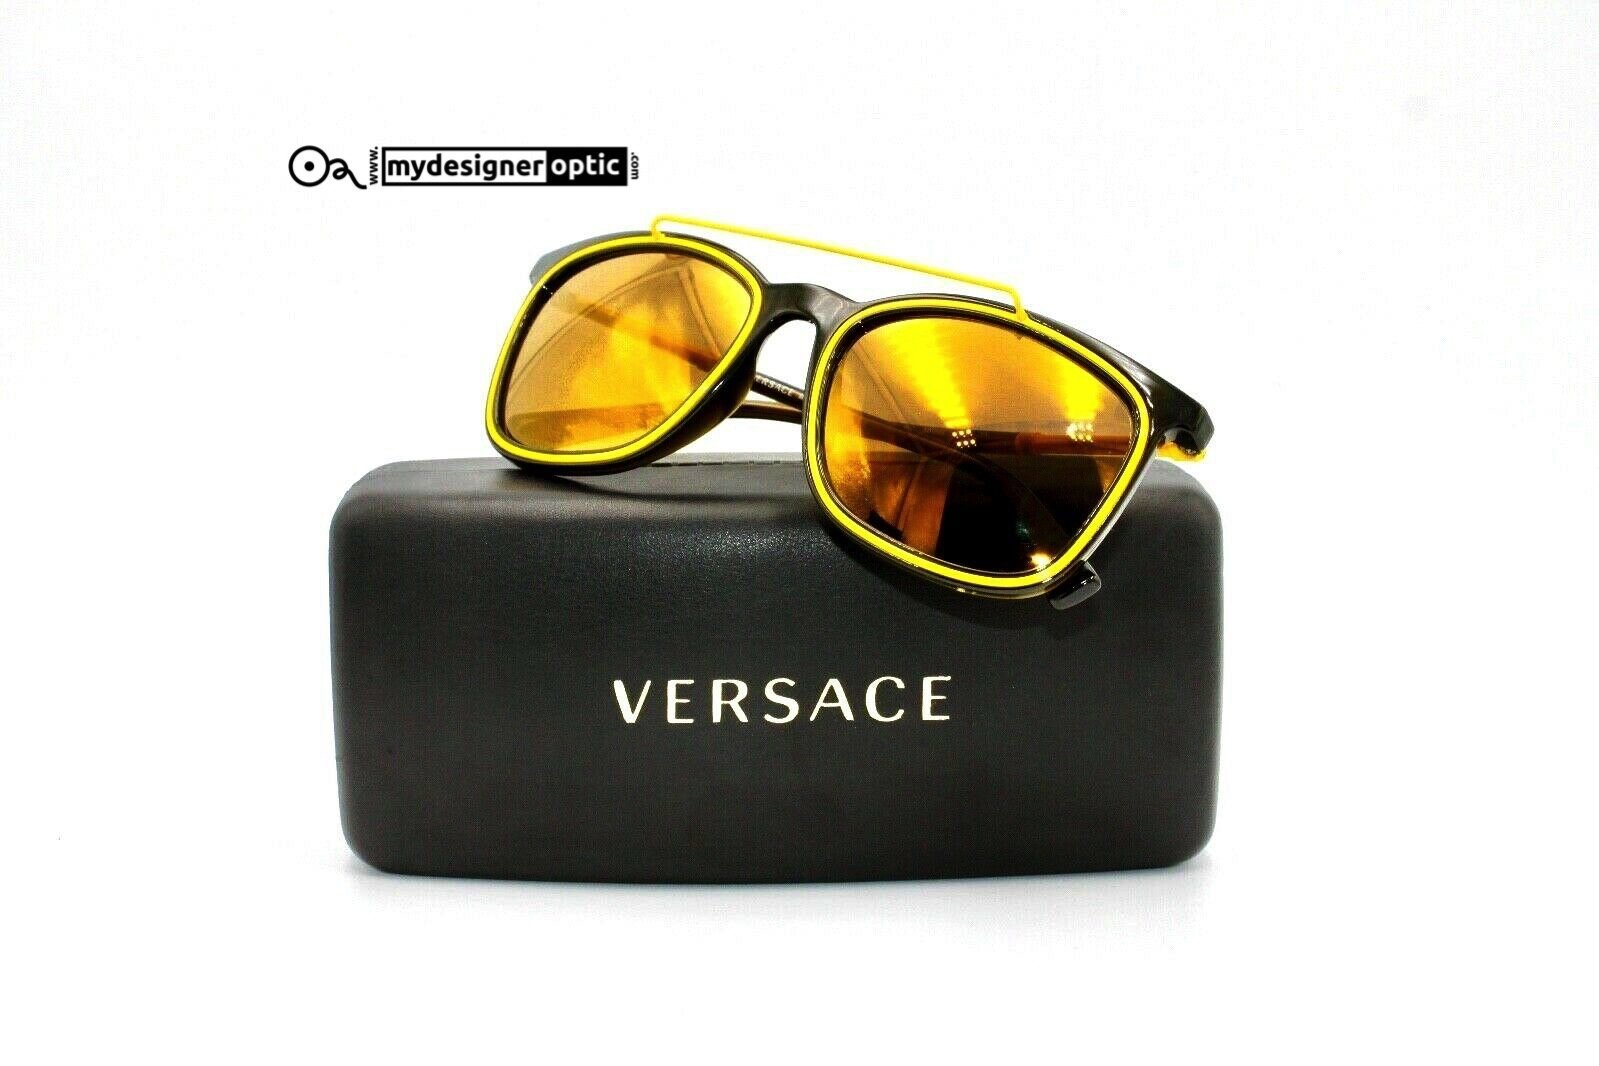 Versace Sunglasses MOD 4335 5256/F9 56 20 145 3N Made in Italy - Mydesigneroptic